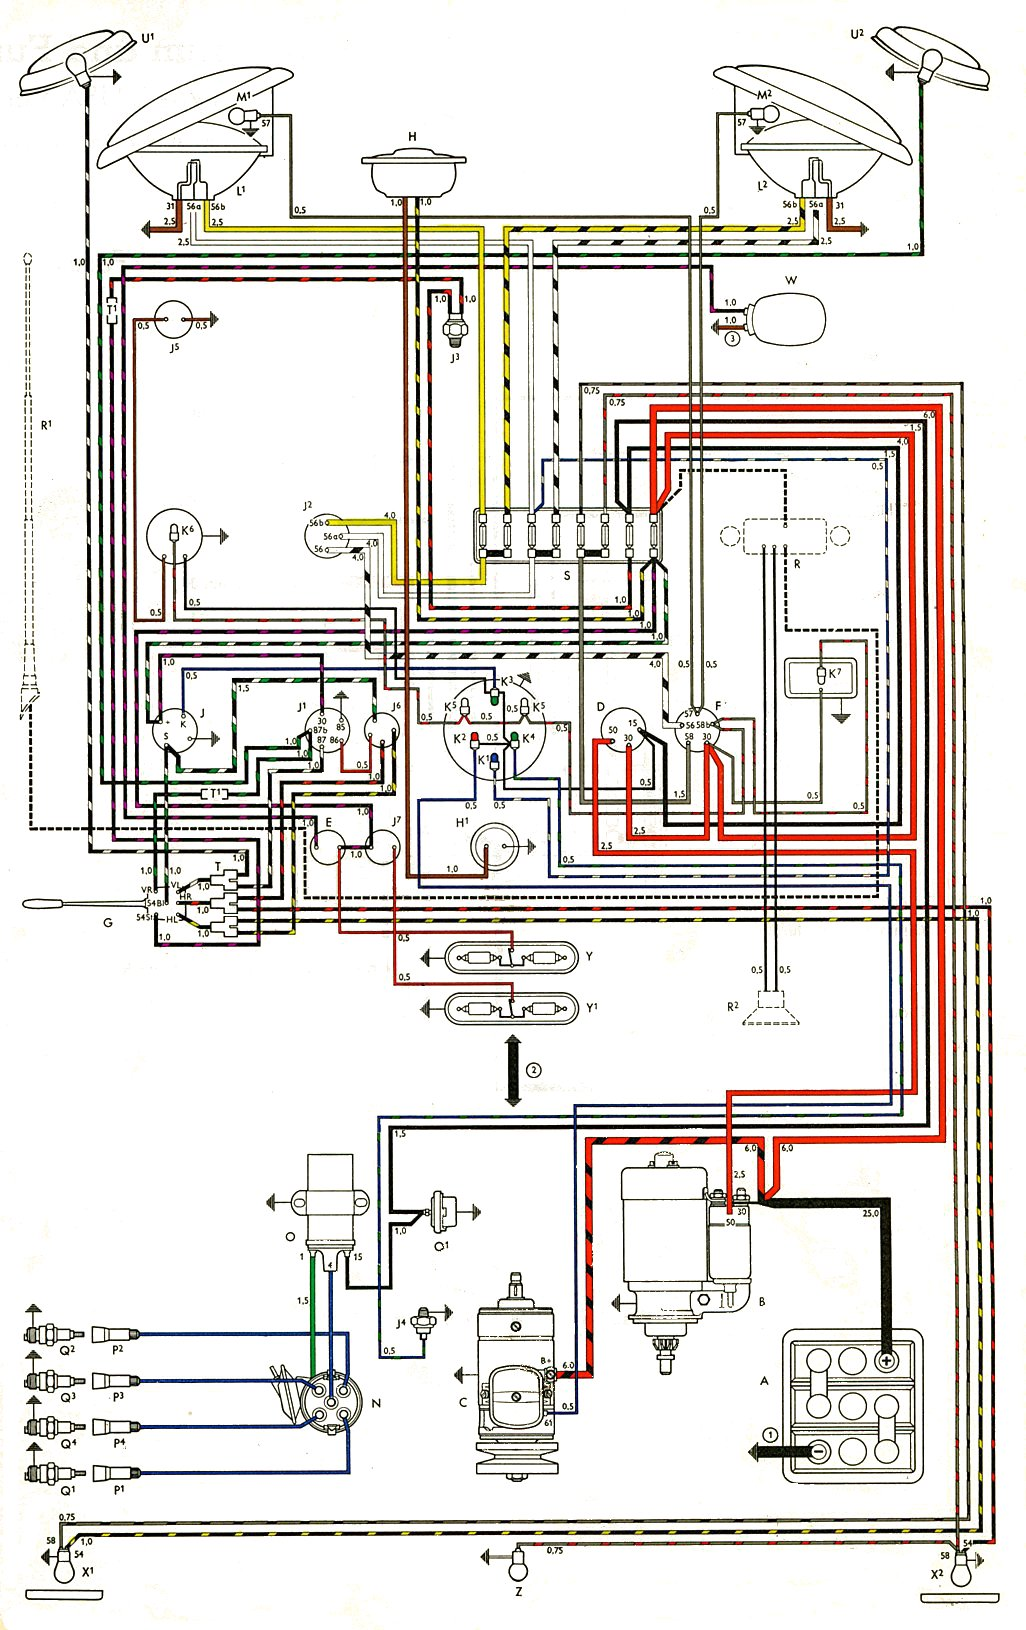 1973 Vw Transporter Bus Wiring Diagram Archive Of Automotive Volkswagen T4 Thesamba Com Type 2 Diagrams Rh